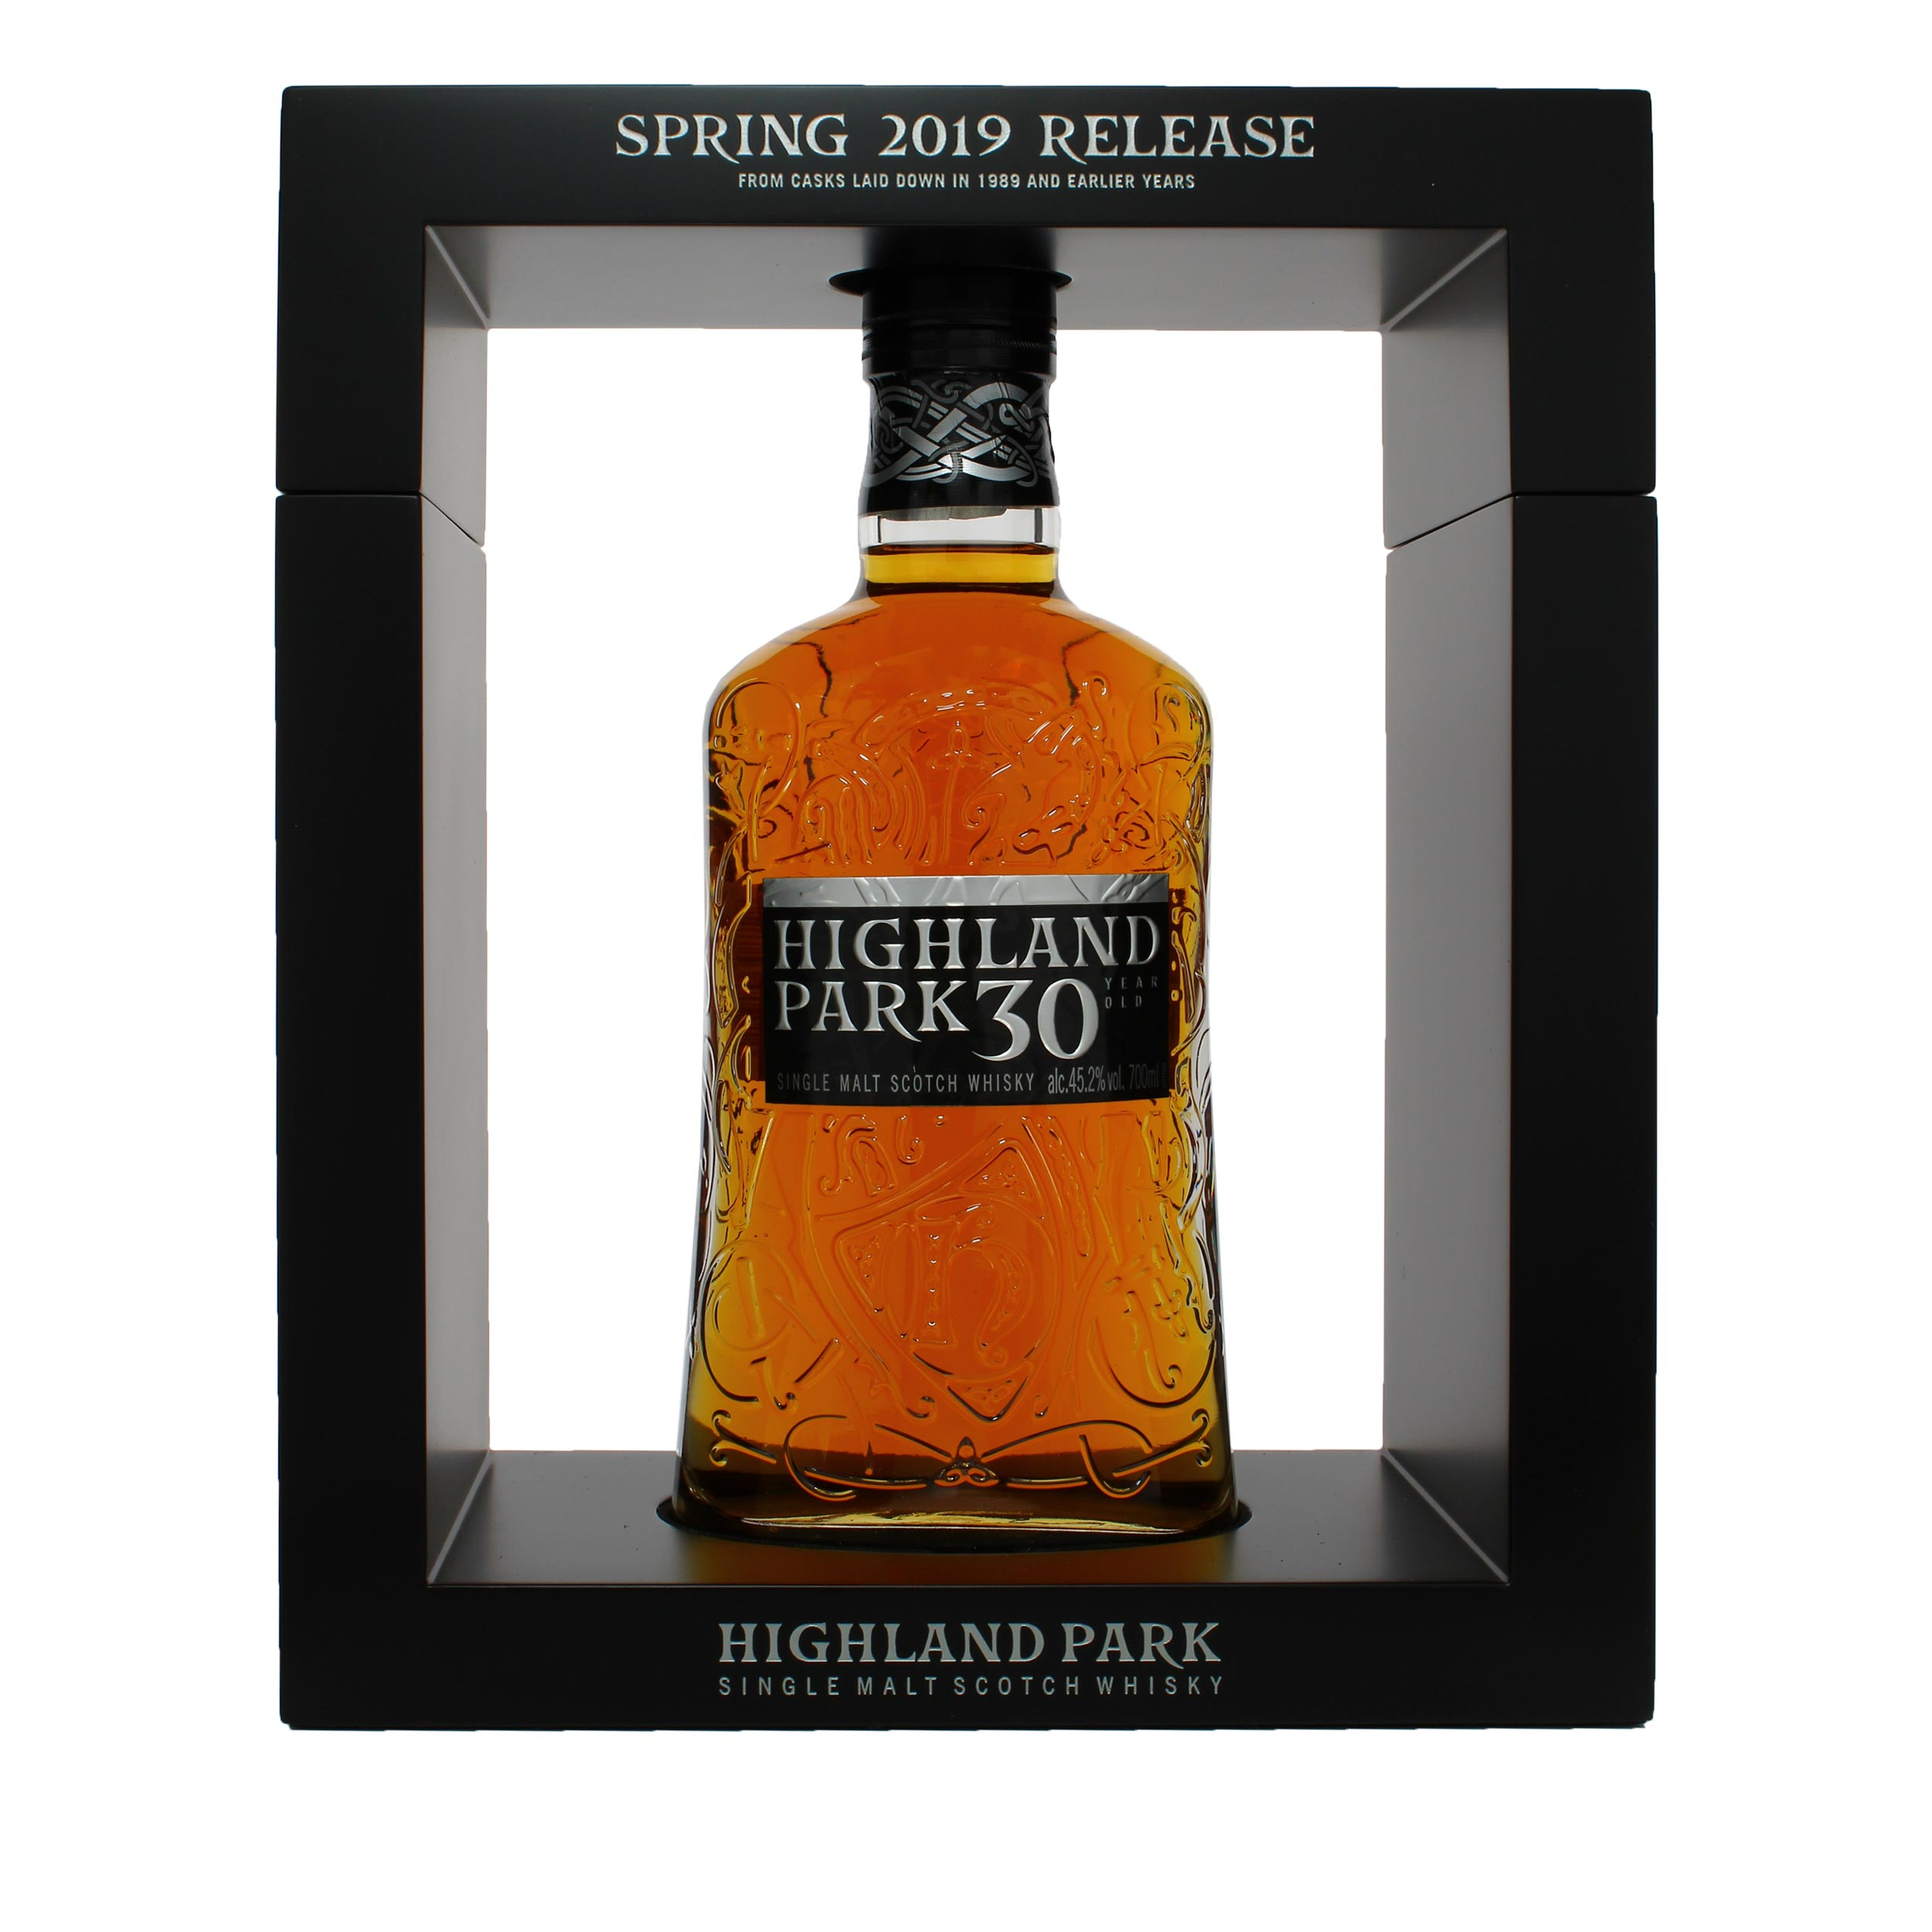 Highland Park 30 Year Old 2019 Release